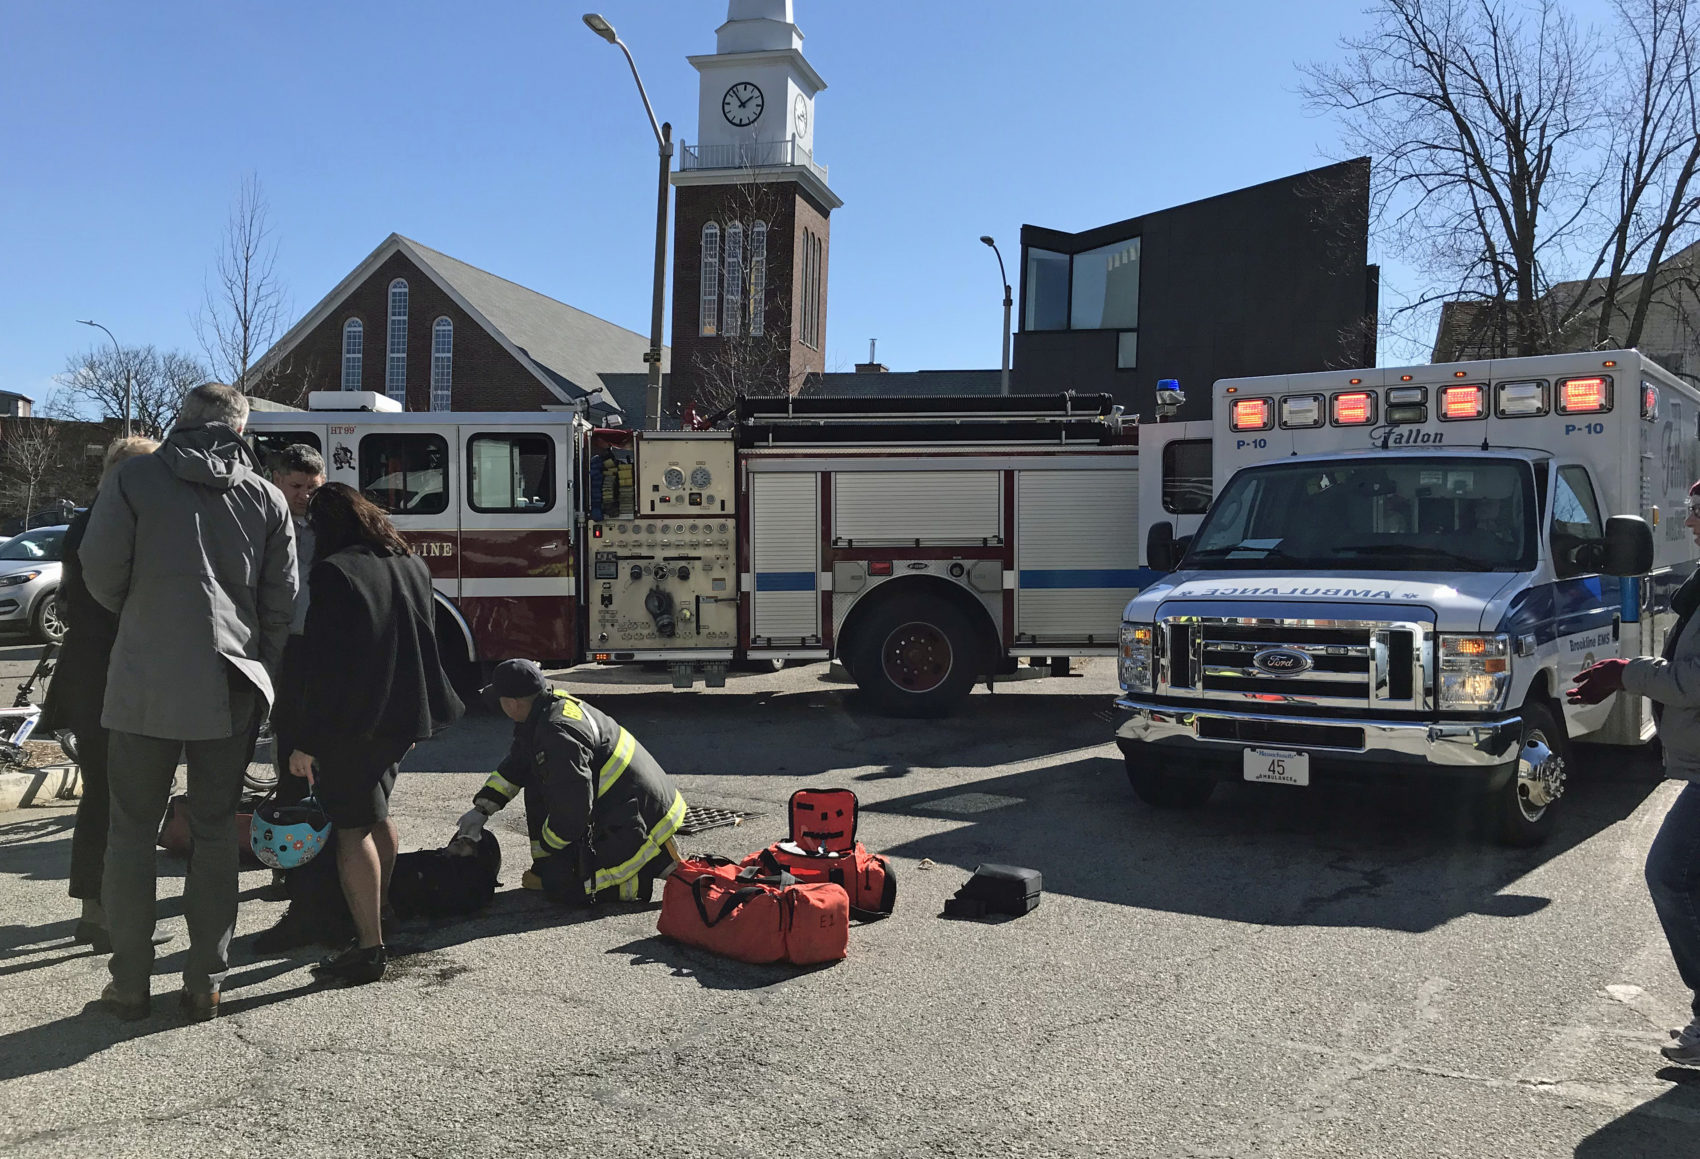 First responders treated a woman after an accident during a launch event for electric scooters in Brookline April 1. (Callum Borchers/WBUR)